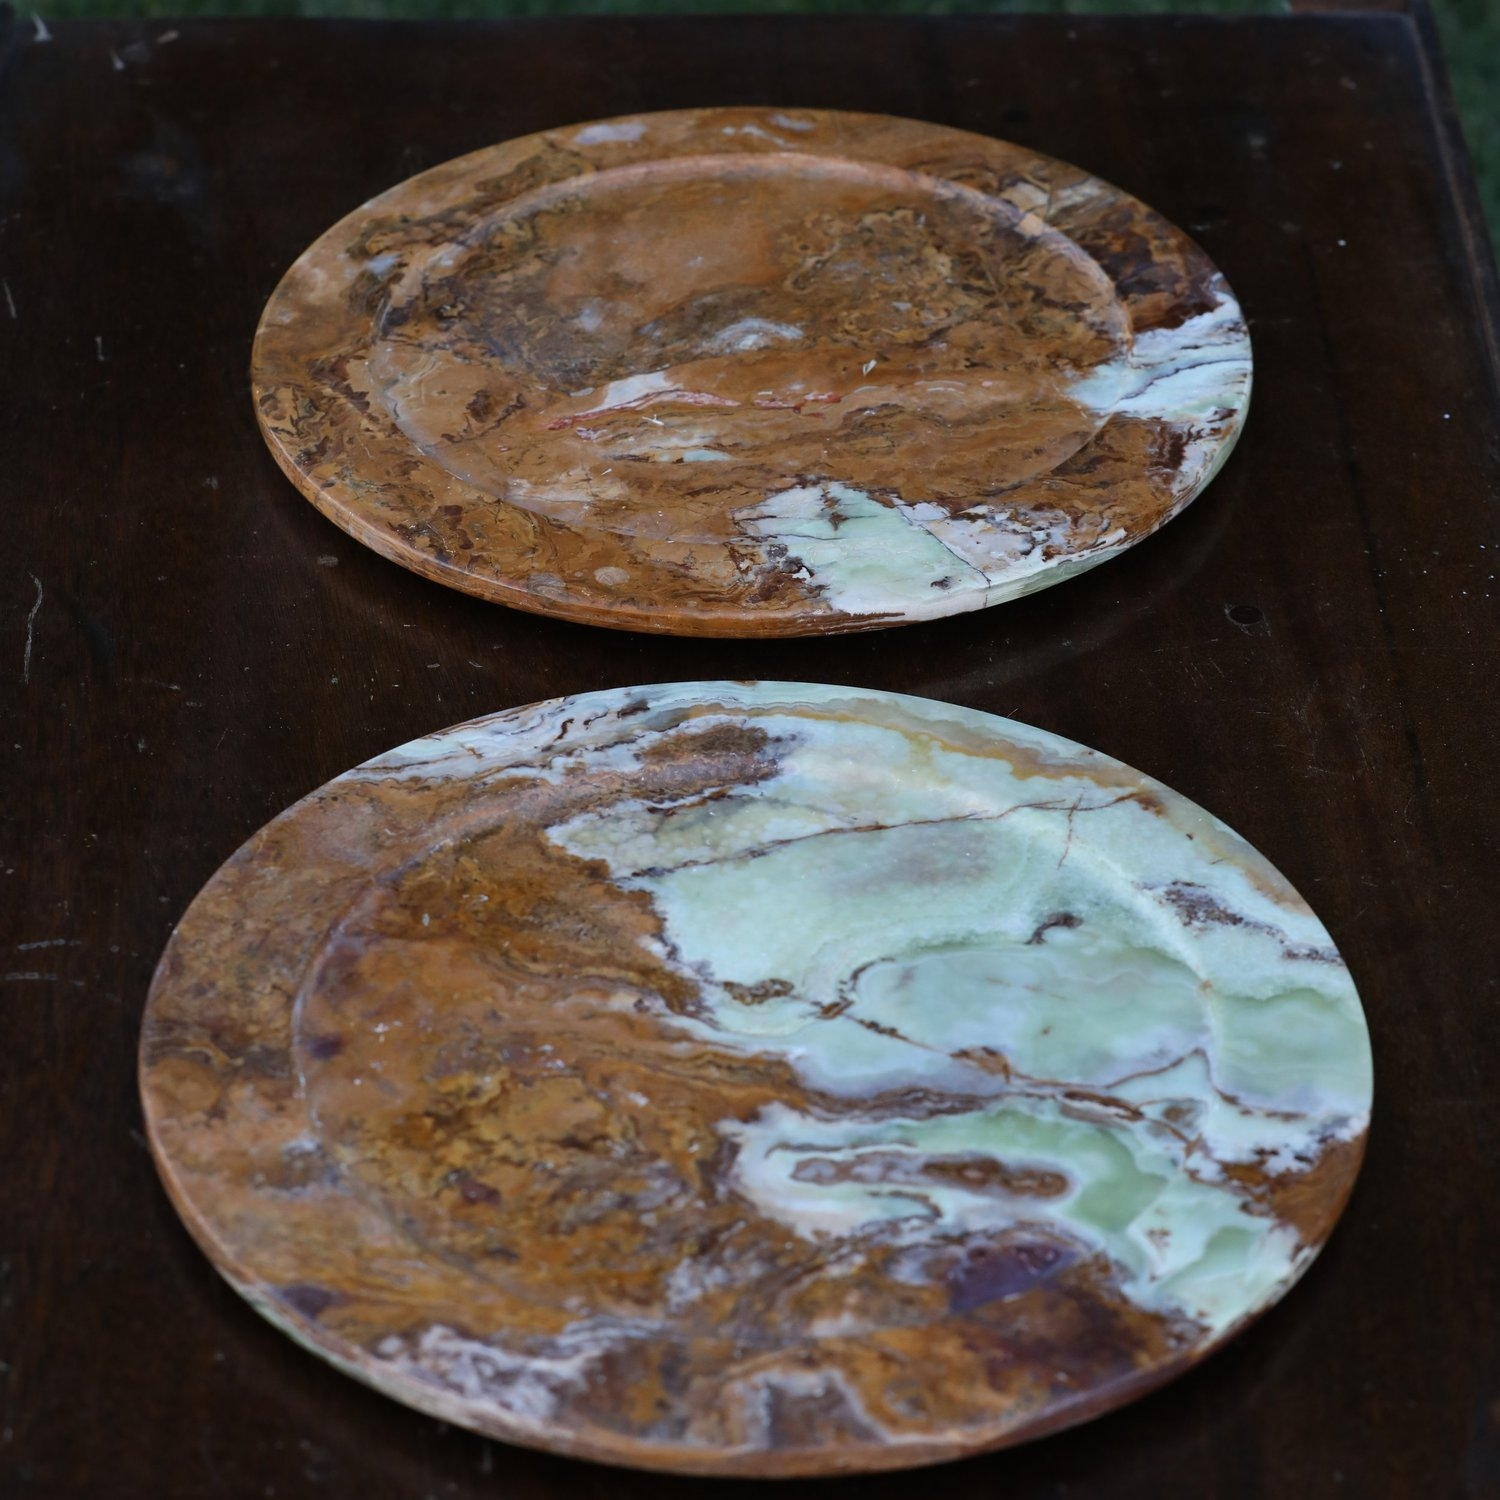 Dark granite natural stone charger plates. Marbled and heavy. Mismatched. Wedding and event rentals.